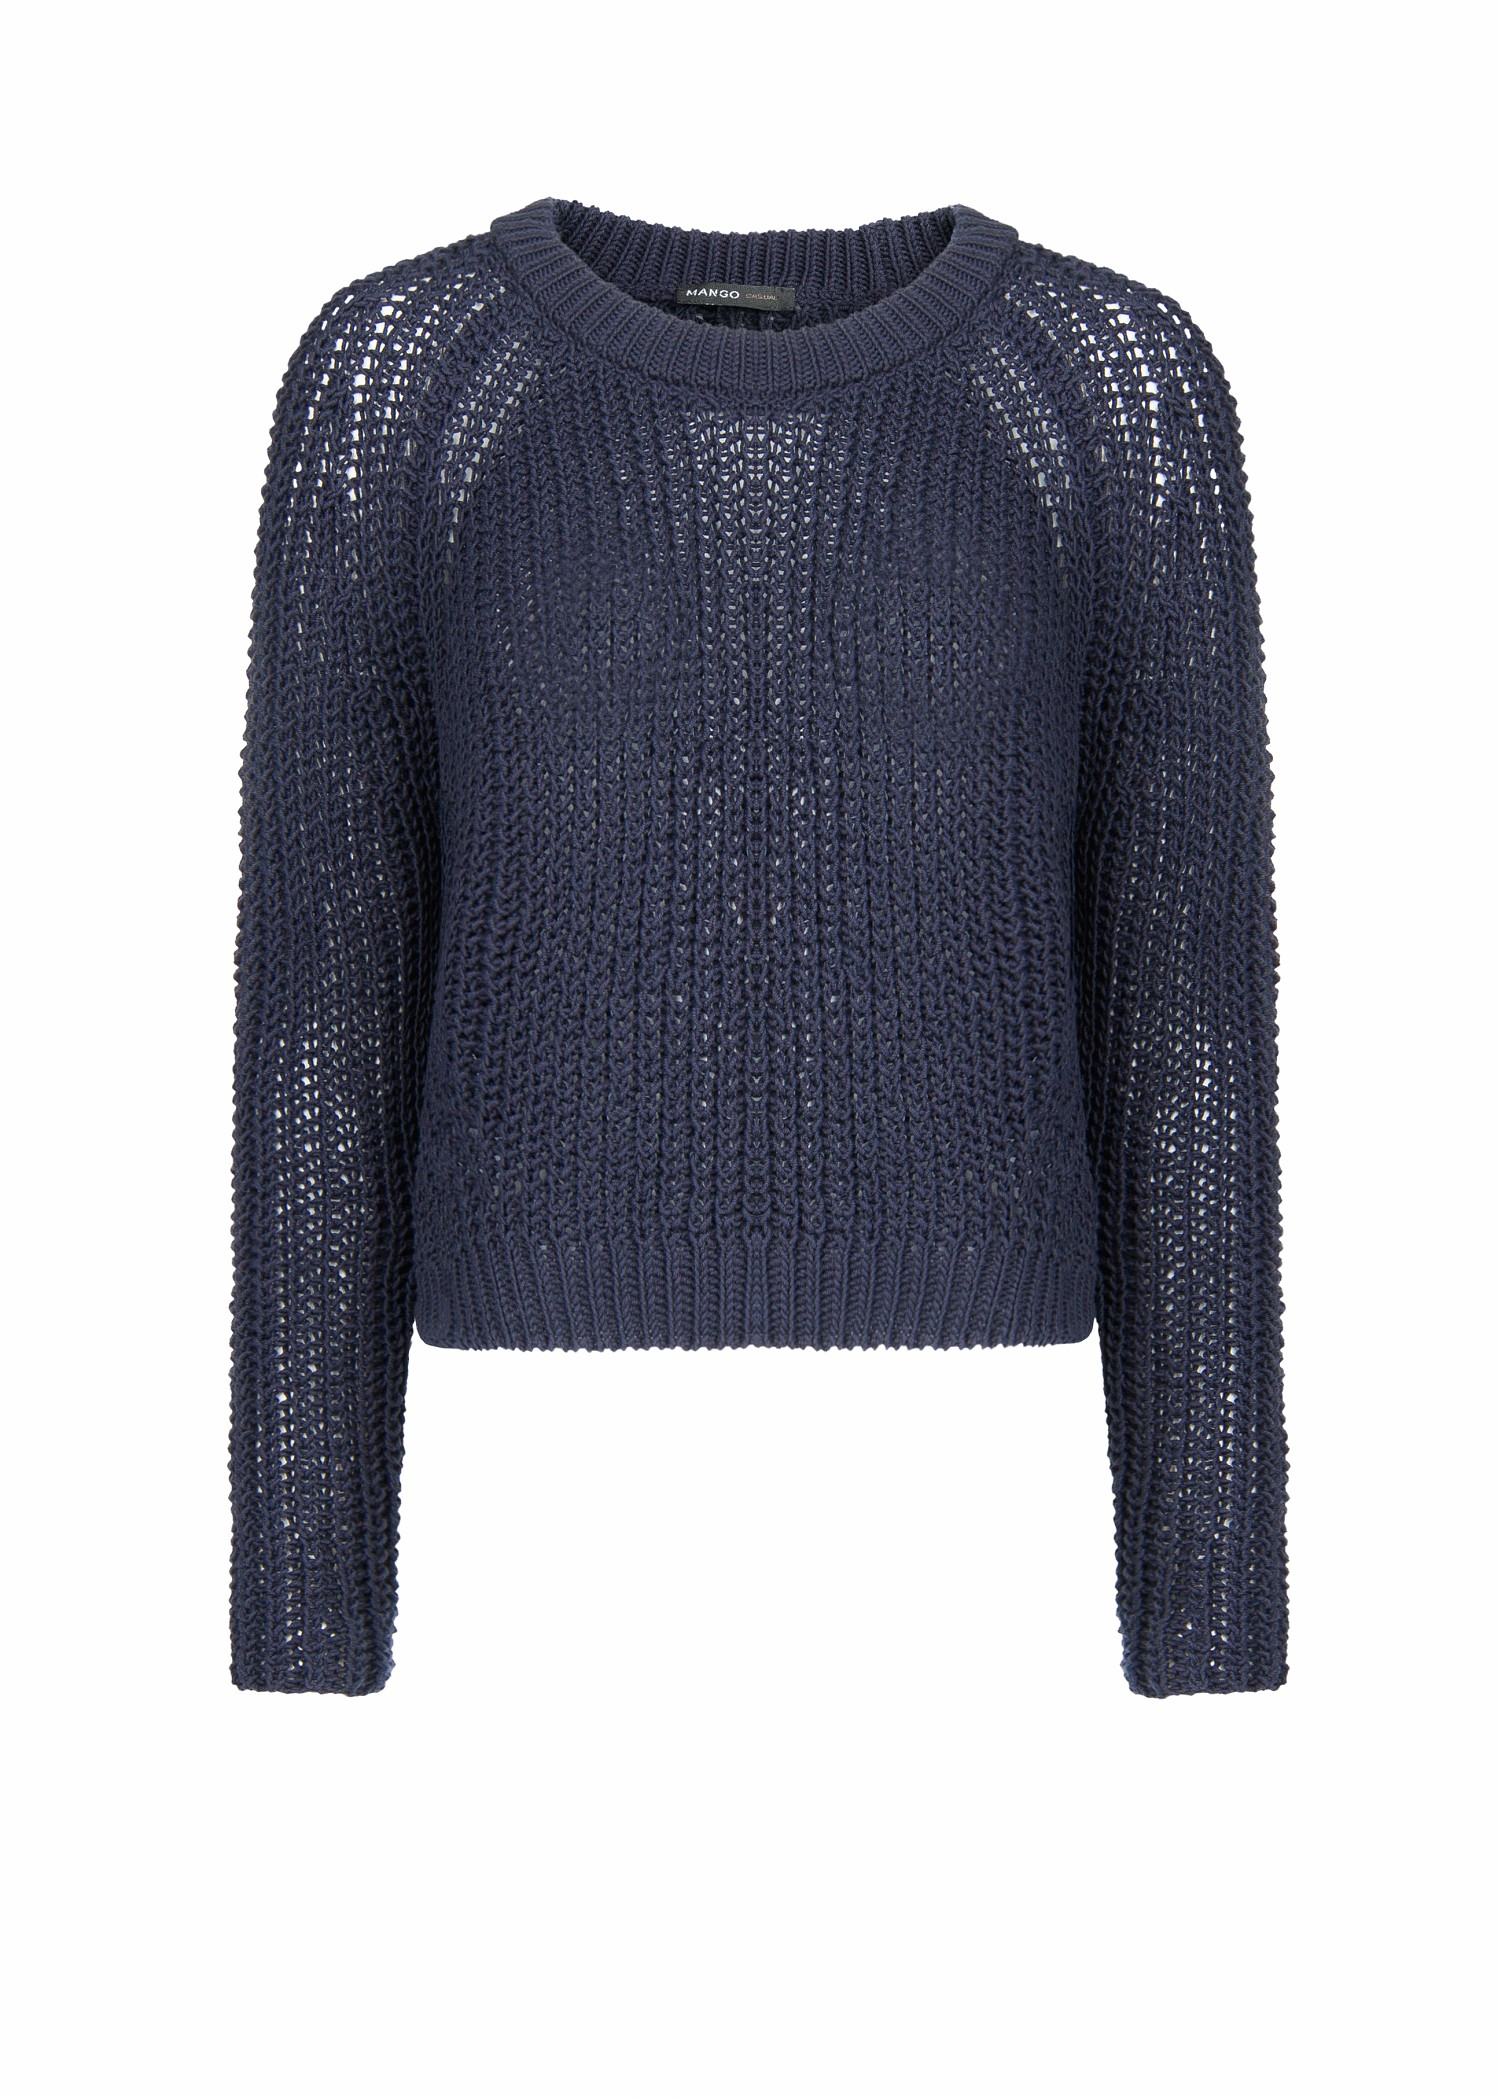 Mango Chunky Knit Cropped Sweater in Blue | Lyst